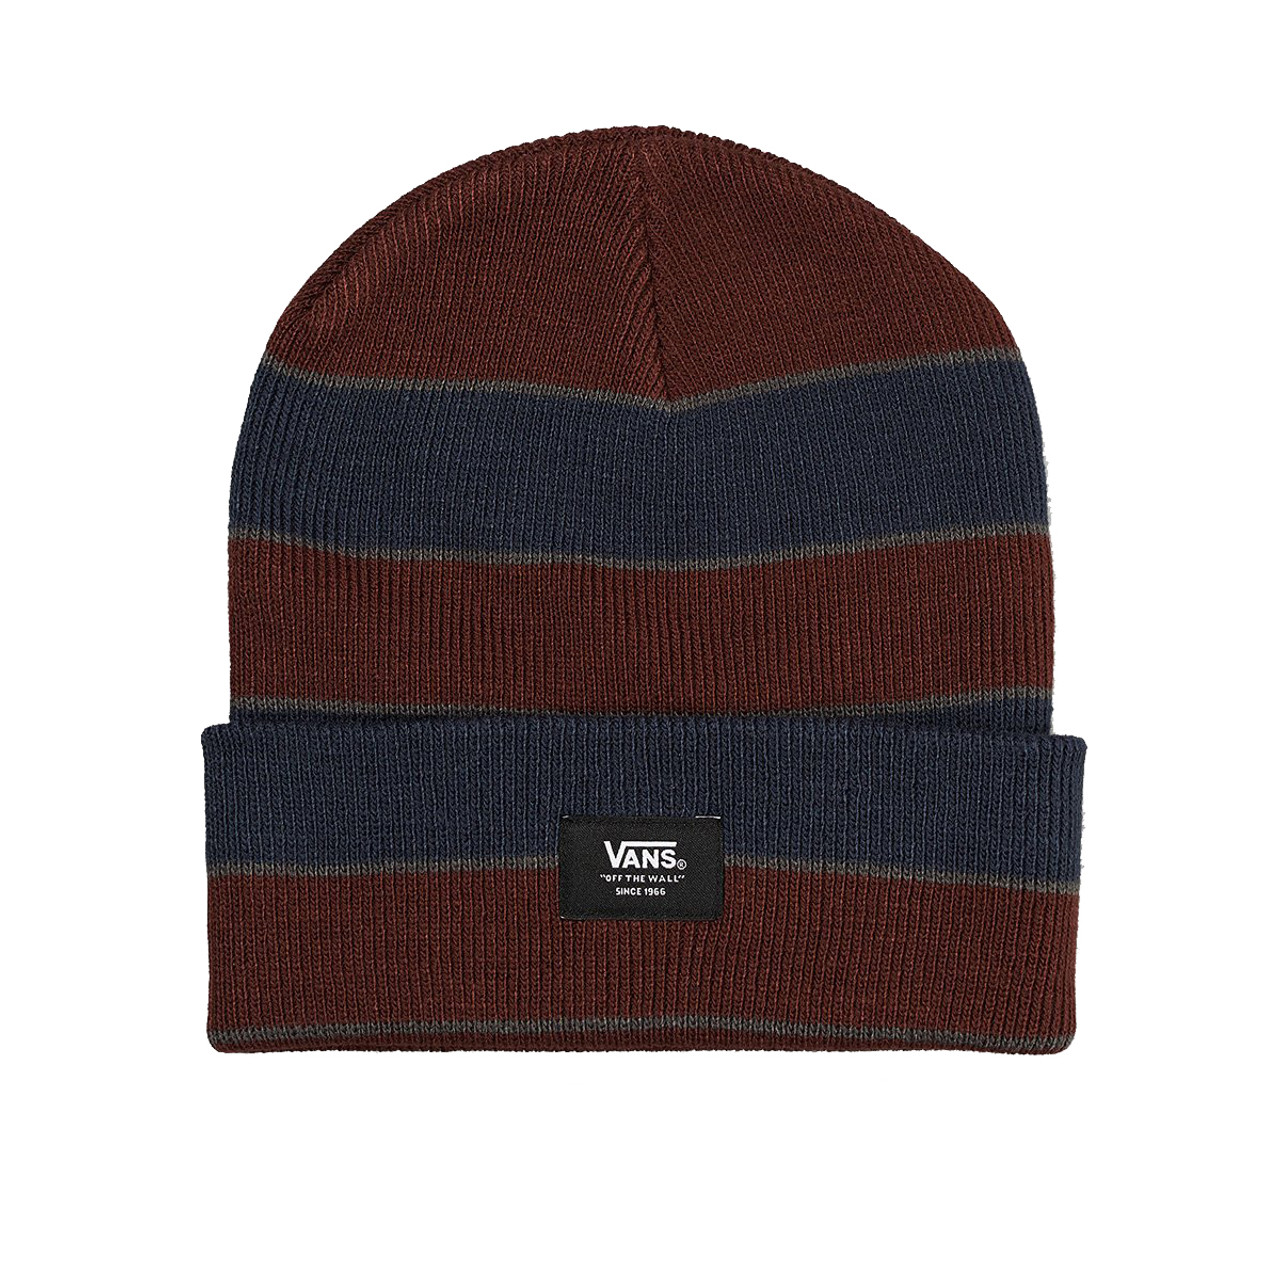 7be2938bd5f Vans Beanie - Striped Cuff - Port Royale Dress Blues - Surf and Dirt